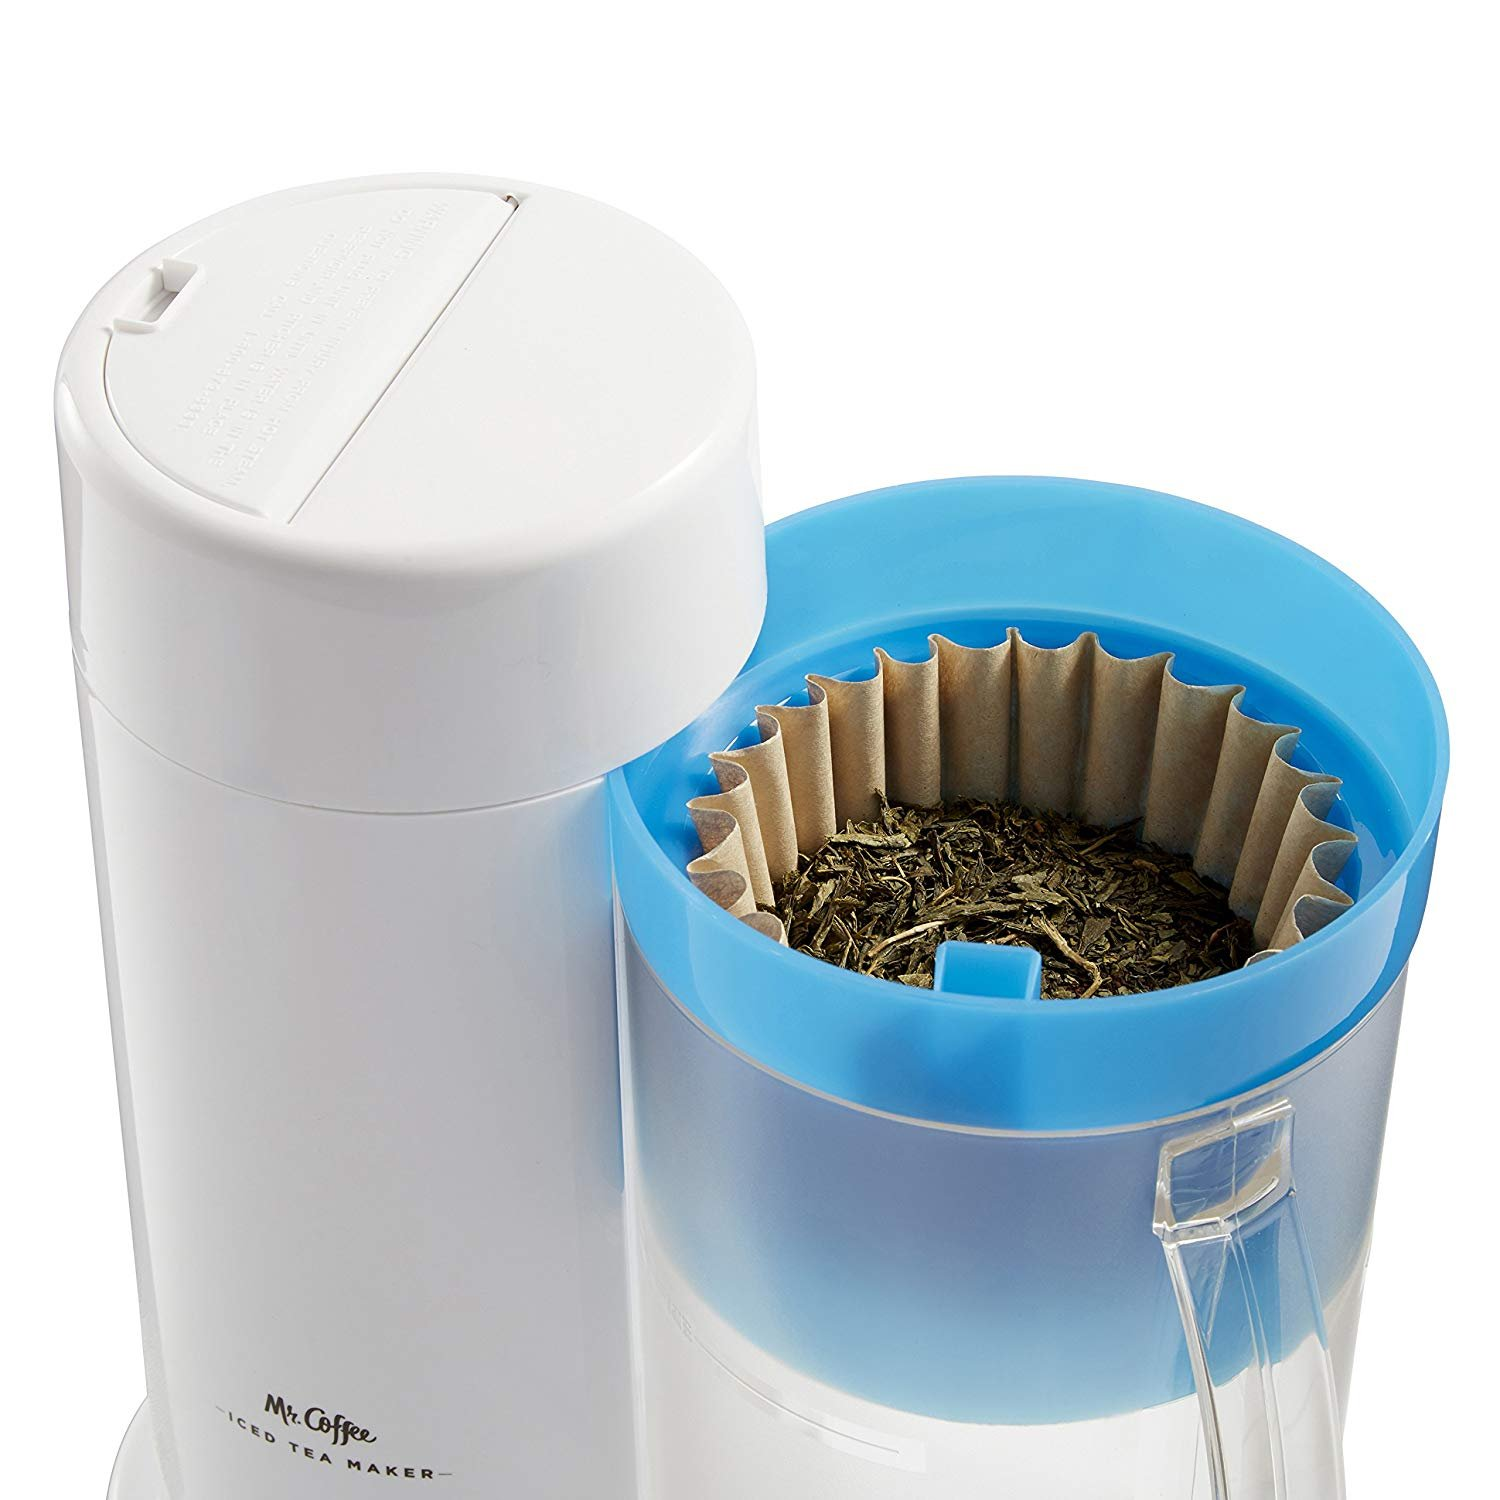 TM1 2-Quart Iced Tea Maker for Loose or Bagged Tea, Blue by Mr. Coffee. (Image #3)